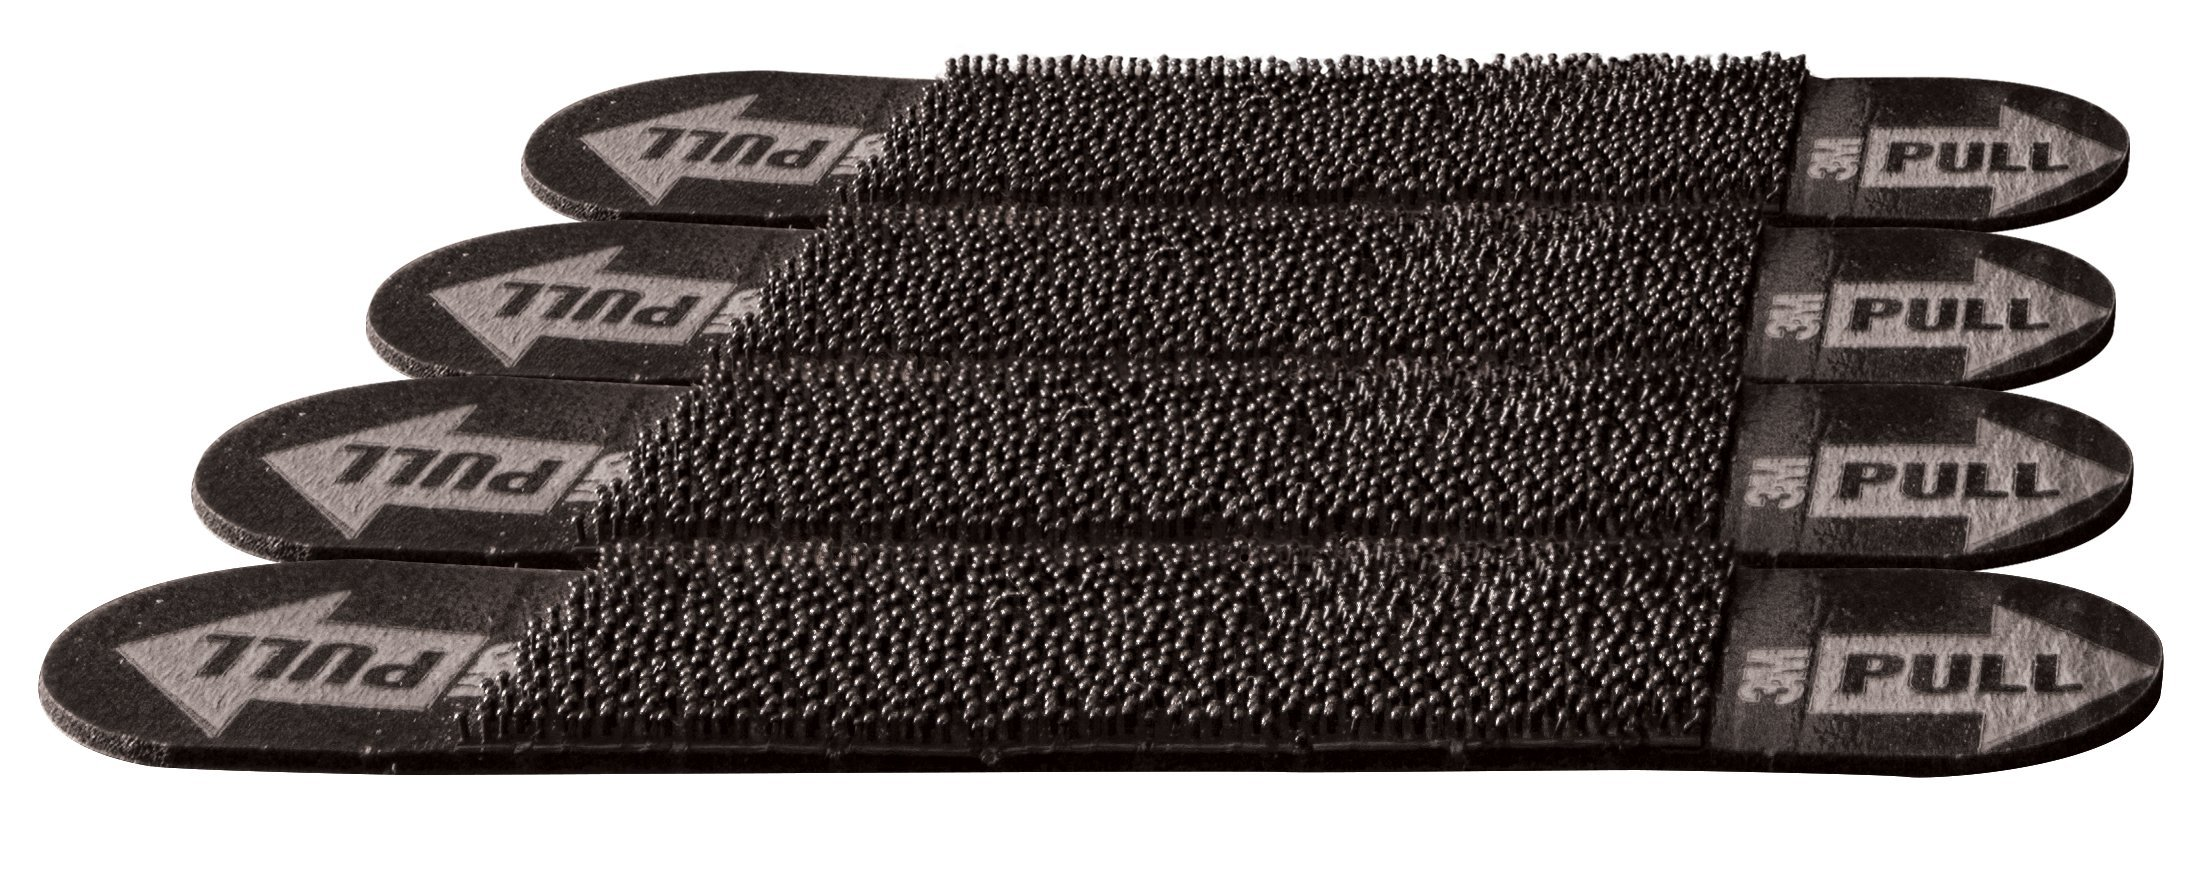 3M Rug Anchors, helps prevent slips and trips, Black, 4 Pairs